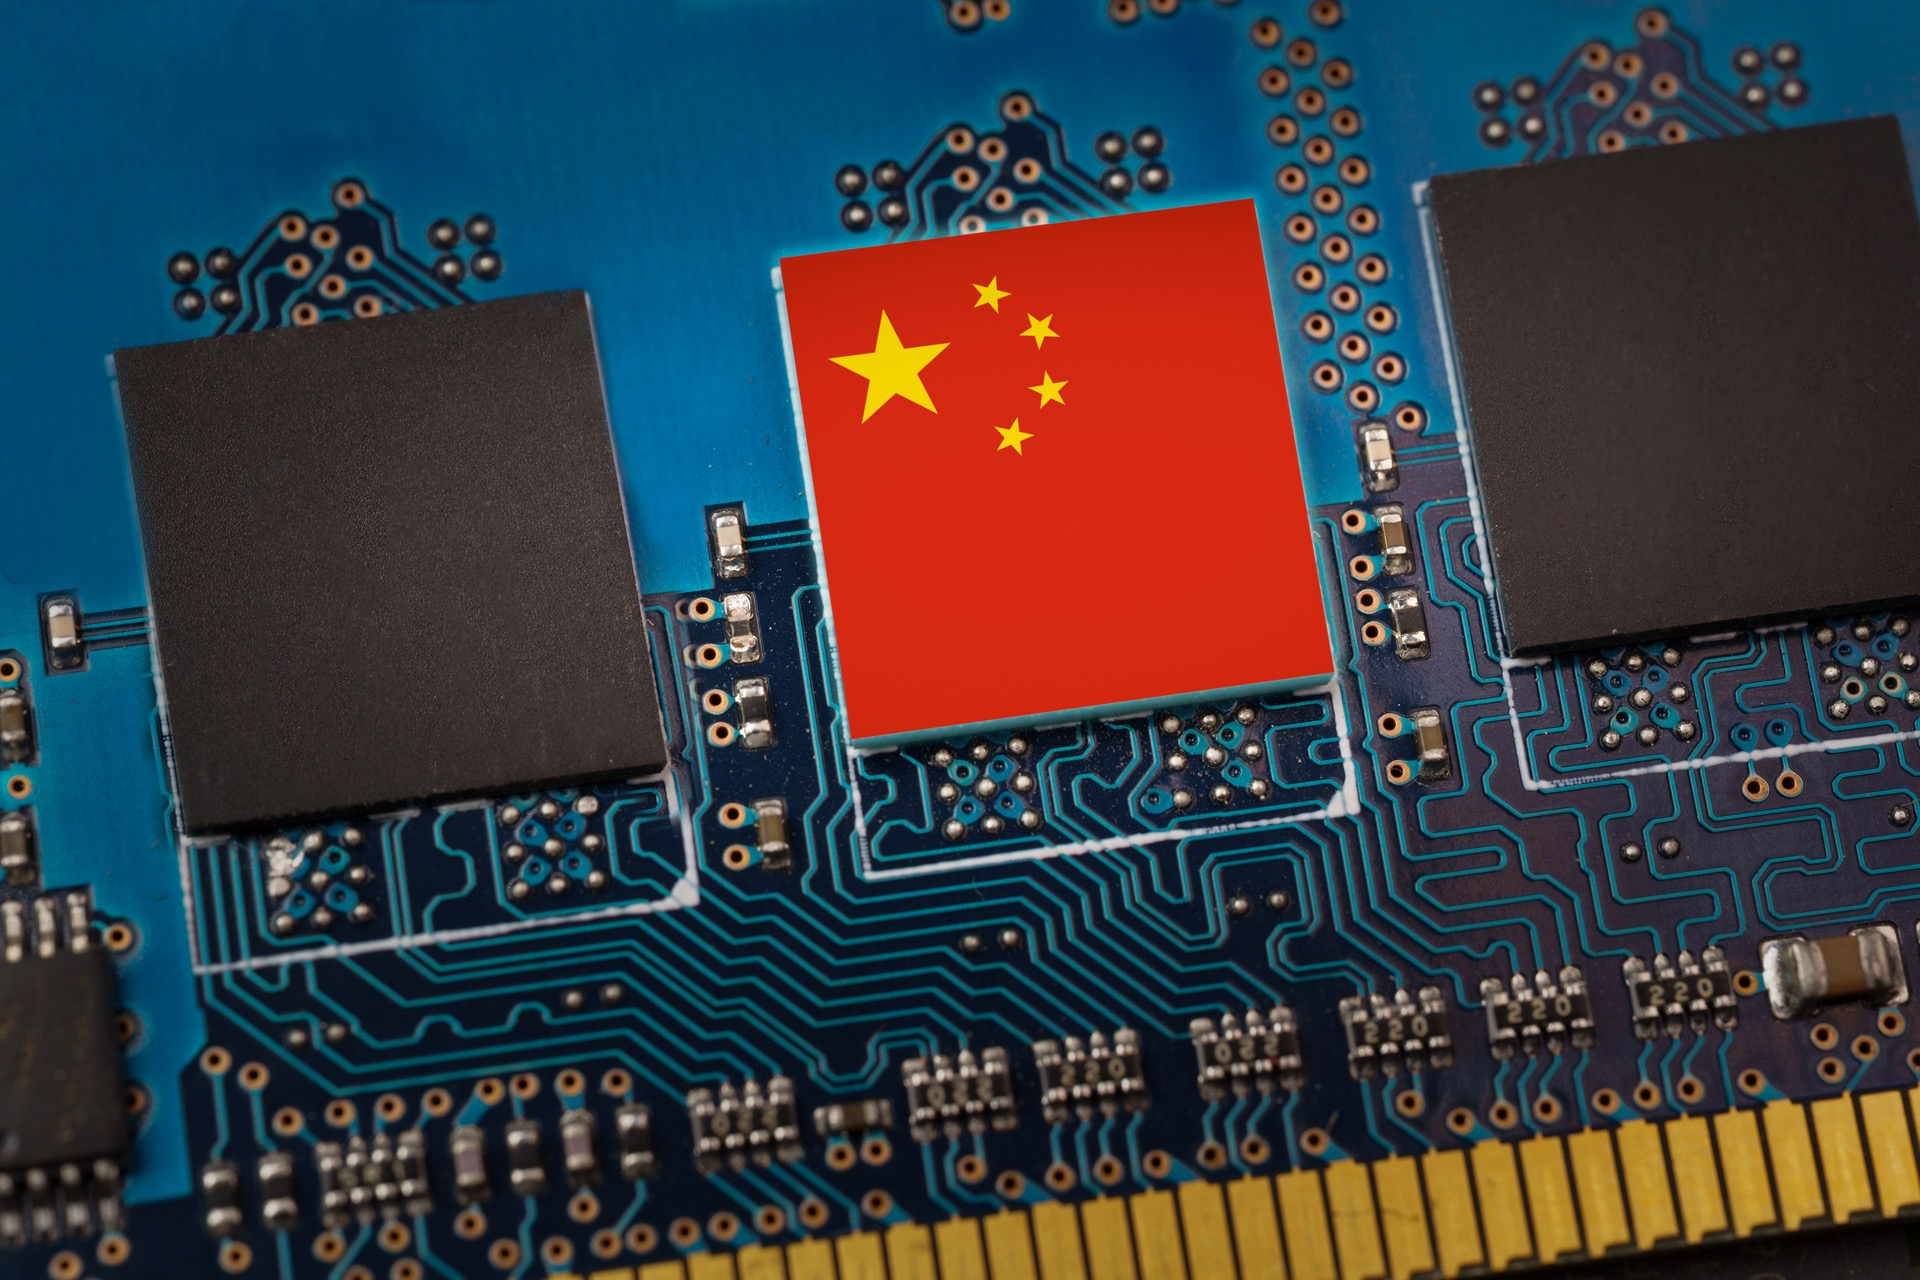 We hate spying and surveillance, says People's Republic of China